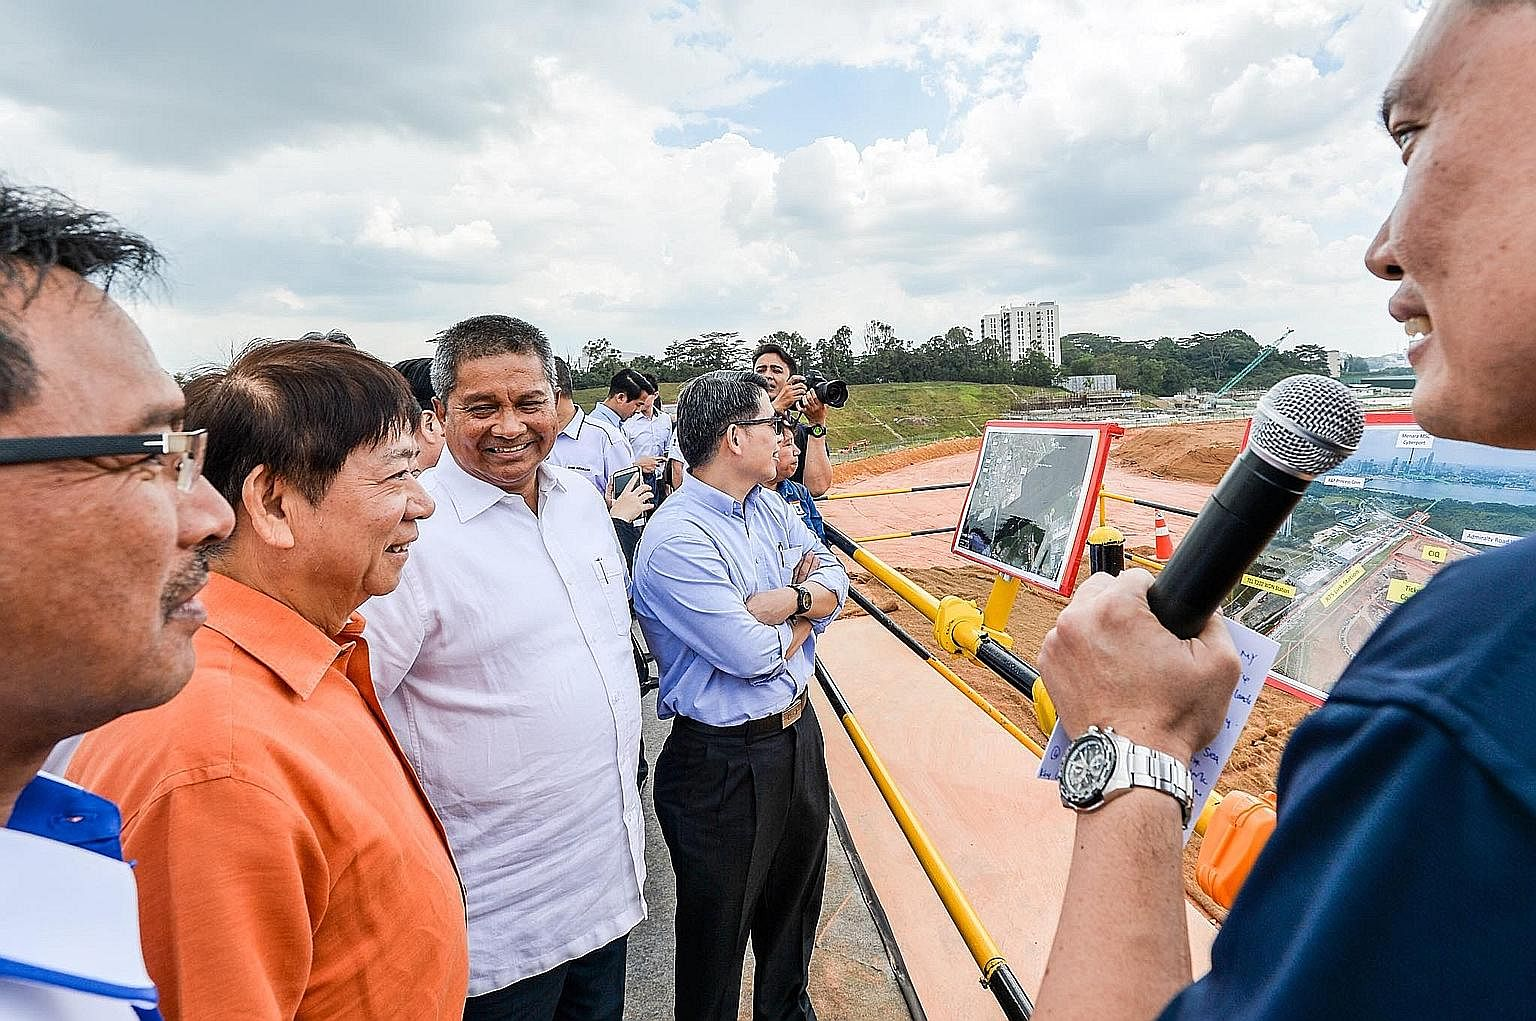 Jb Singapore Rts Link On Track To Open By 2024 Khaw Transport News Trip Kuala Lumpur Top Stories The Straits Times